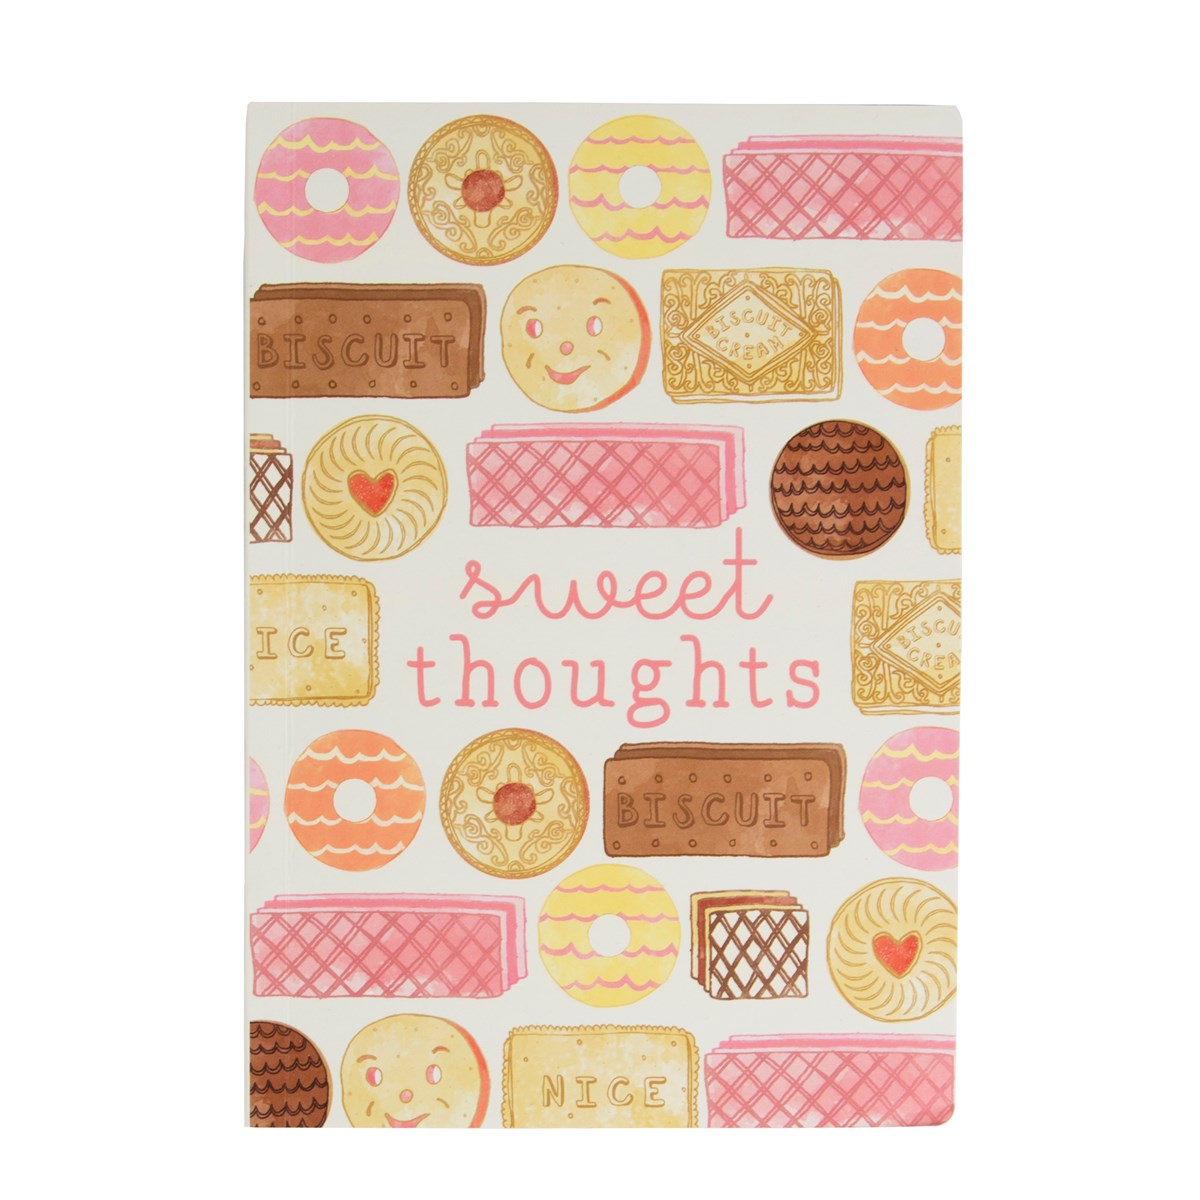 Sweet Thoughts Biscuit A5 Notebook